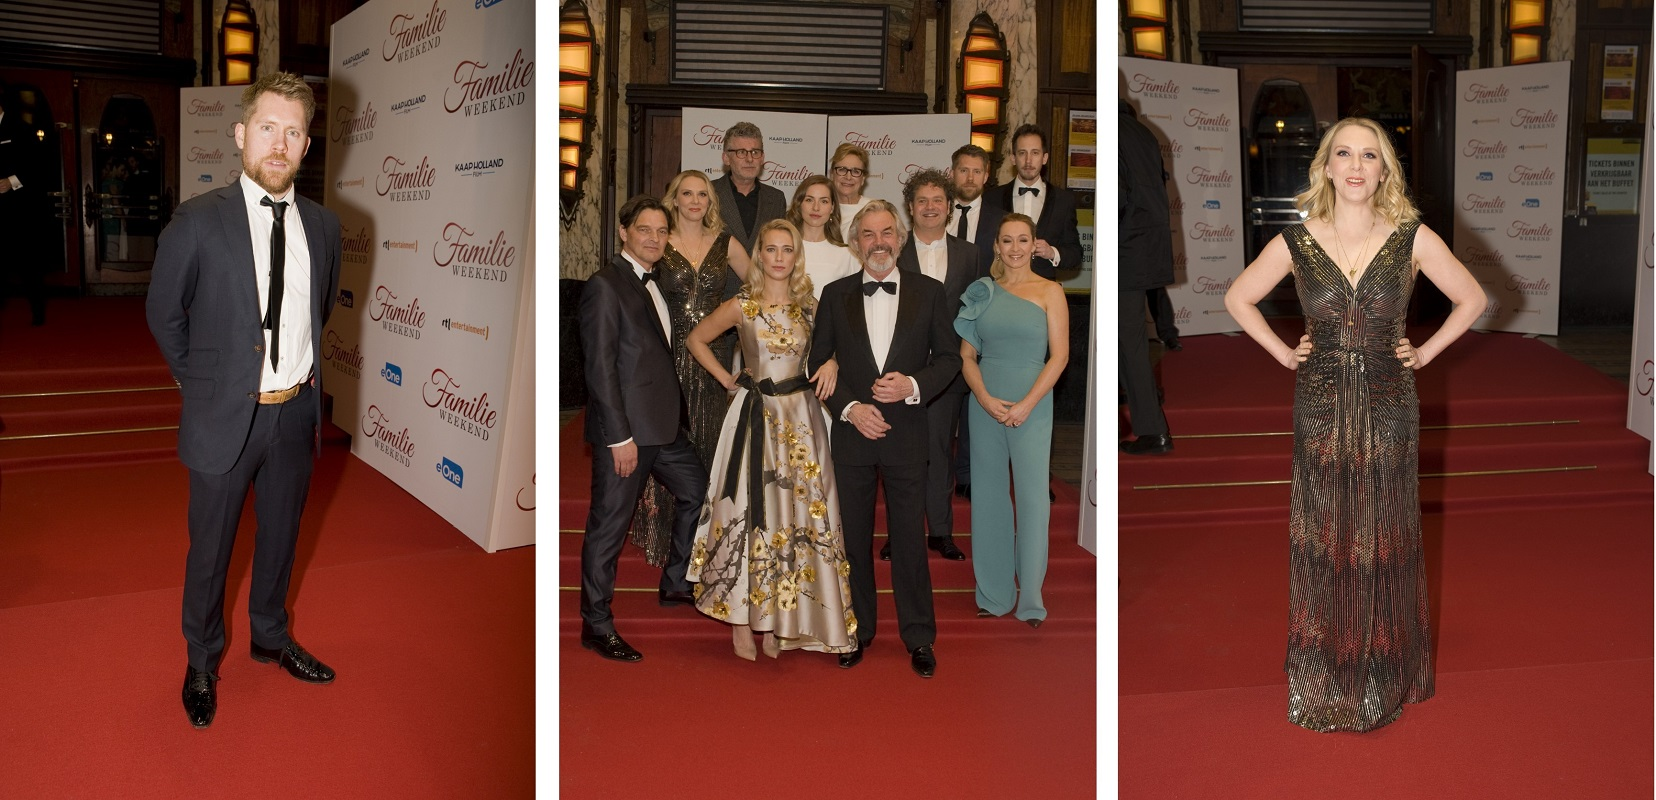 Premiere Familieweekend Glamourland (1)